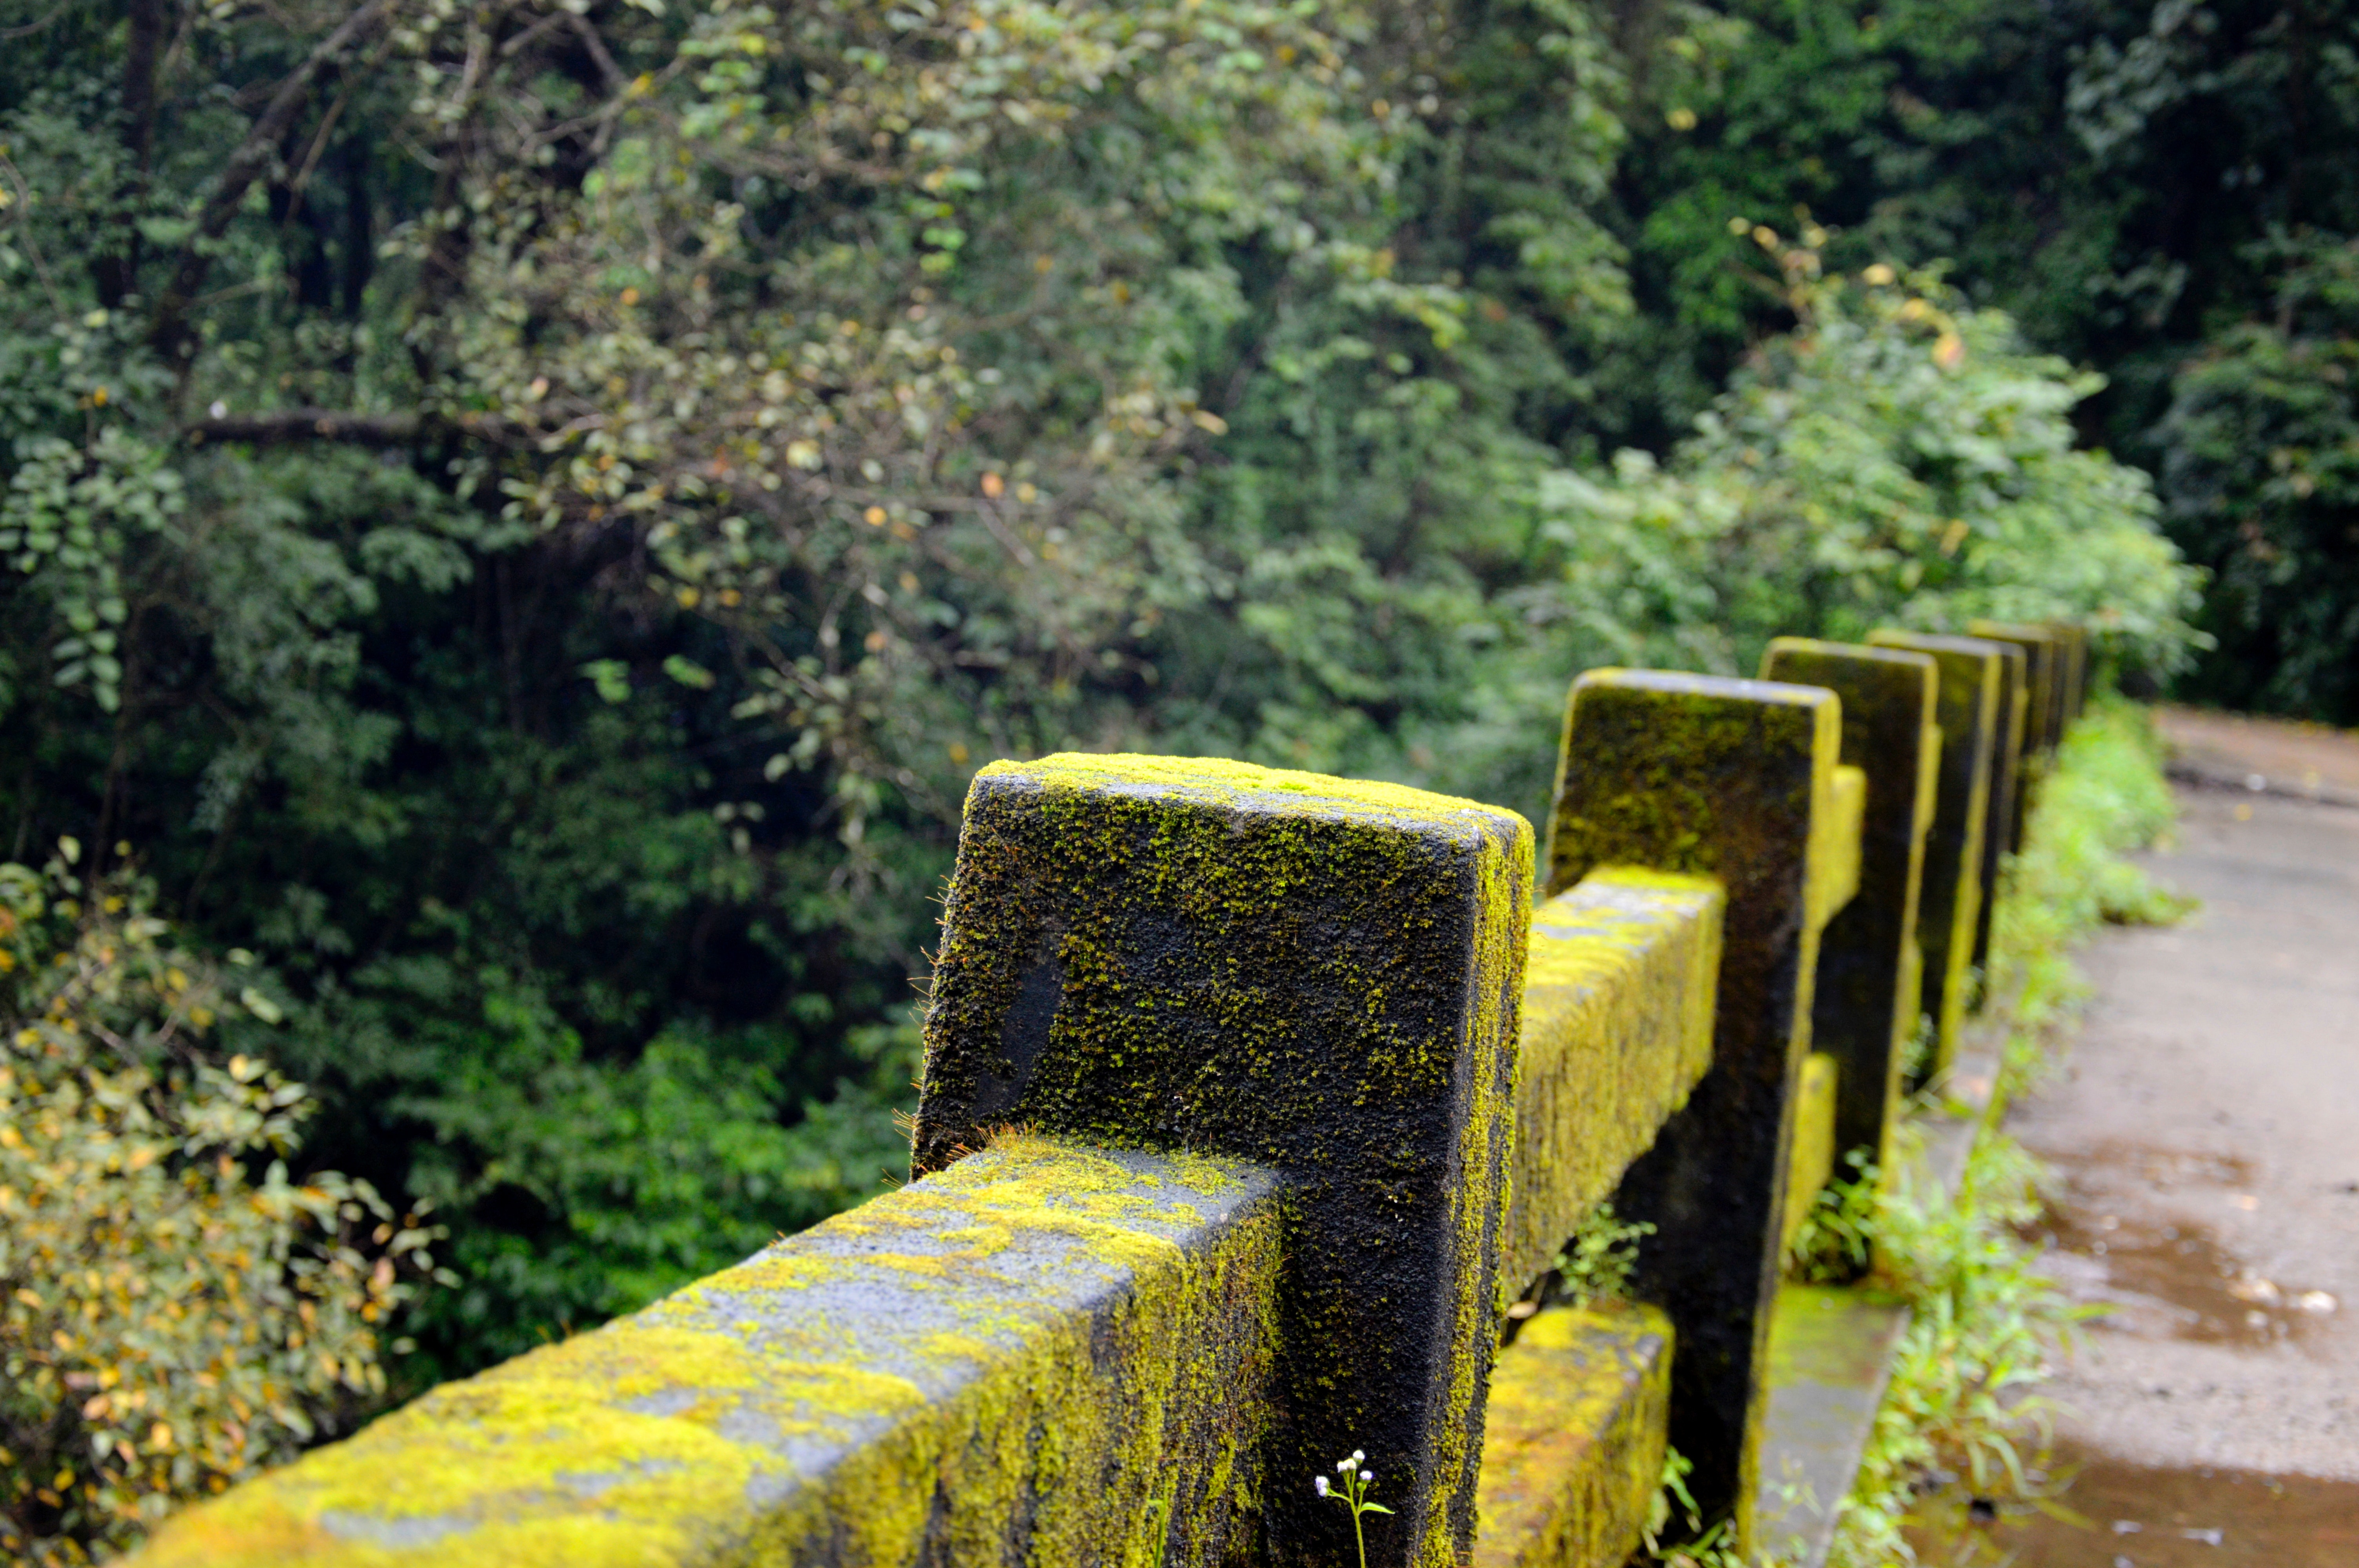 Concrete Fence With Green Moss Near Green Tree, Bridge of sighs, Outdoors, Water, Vegetation, HQ Photo